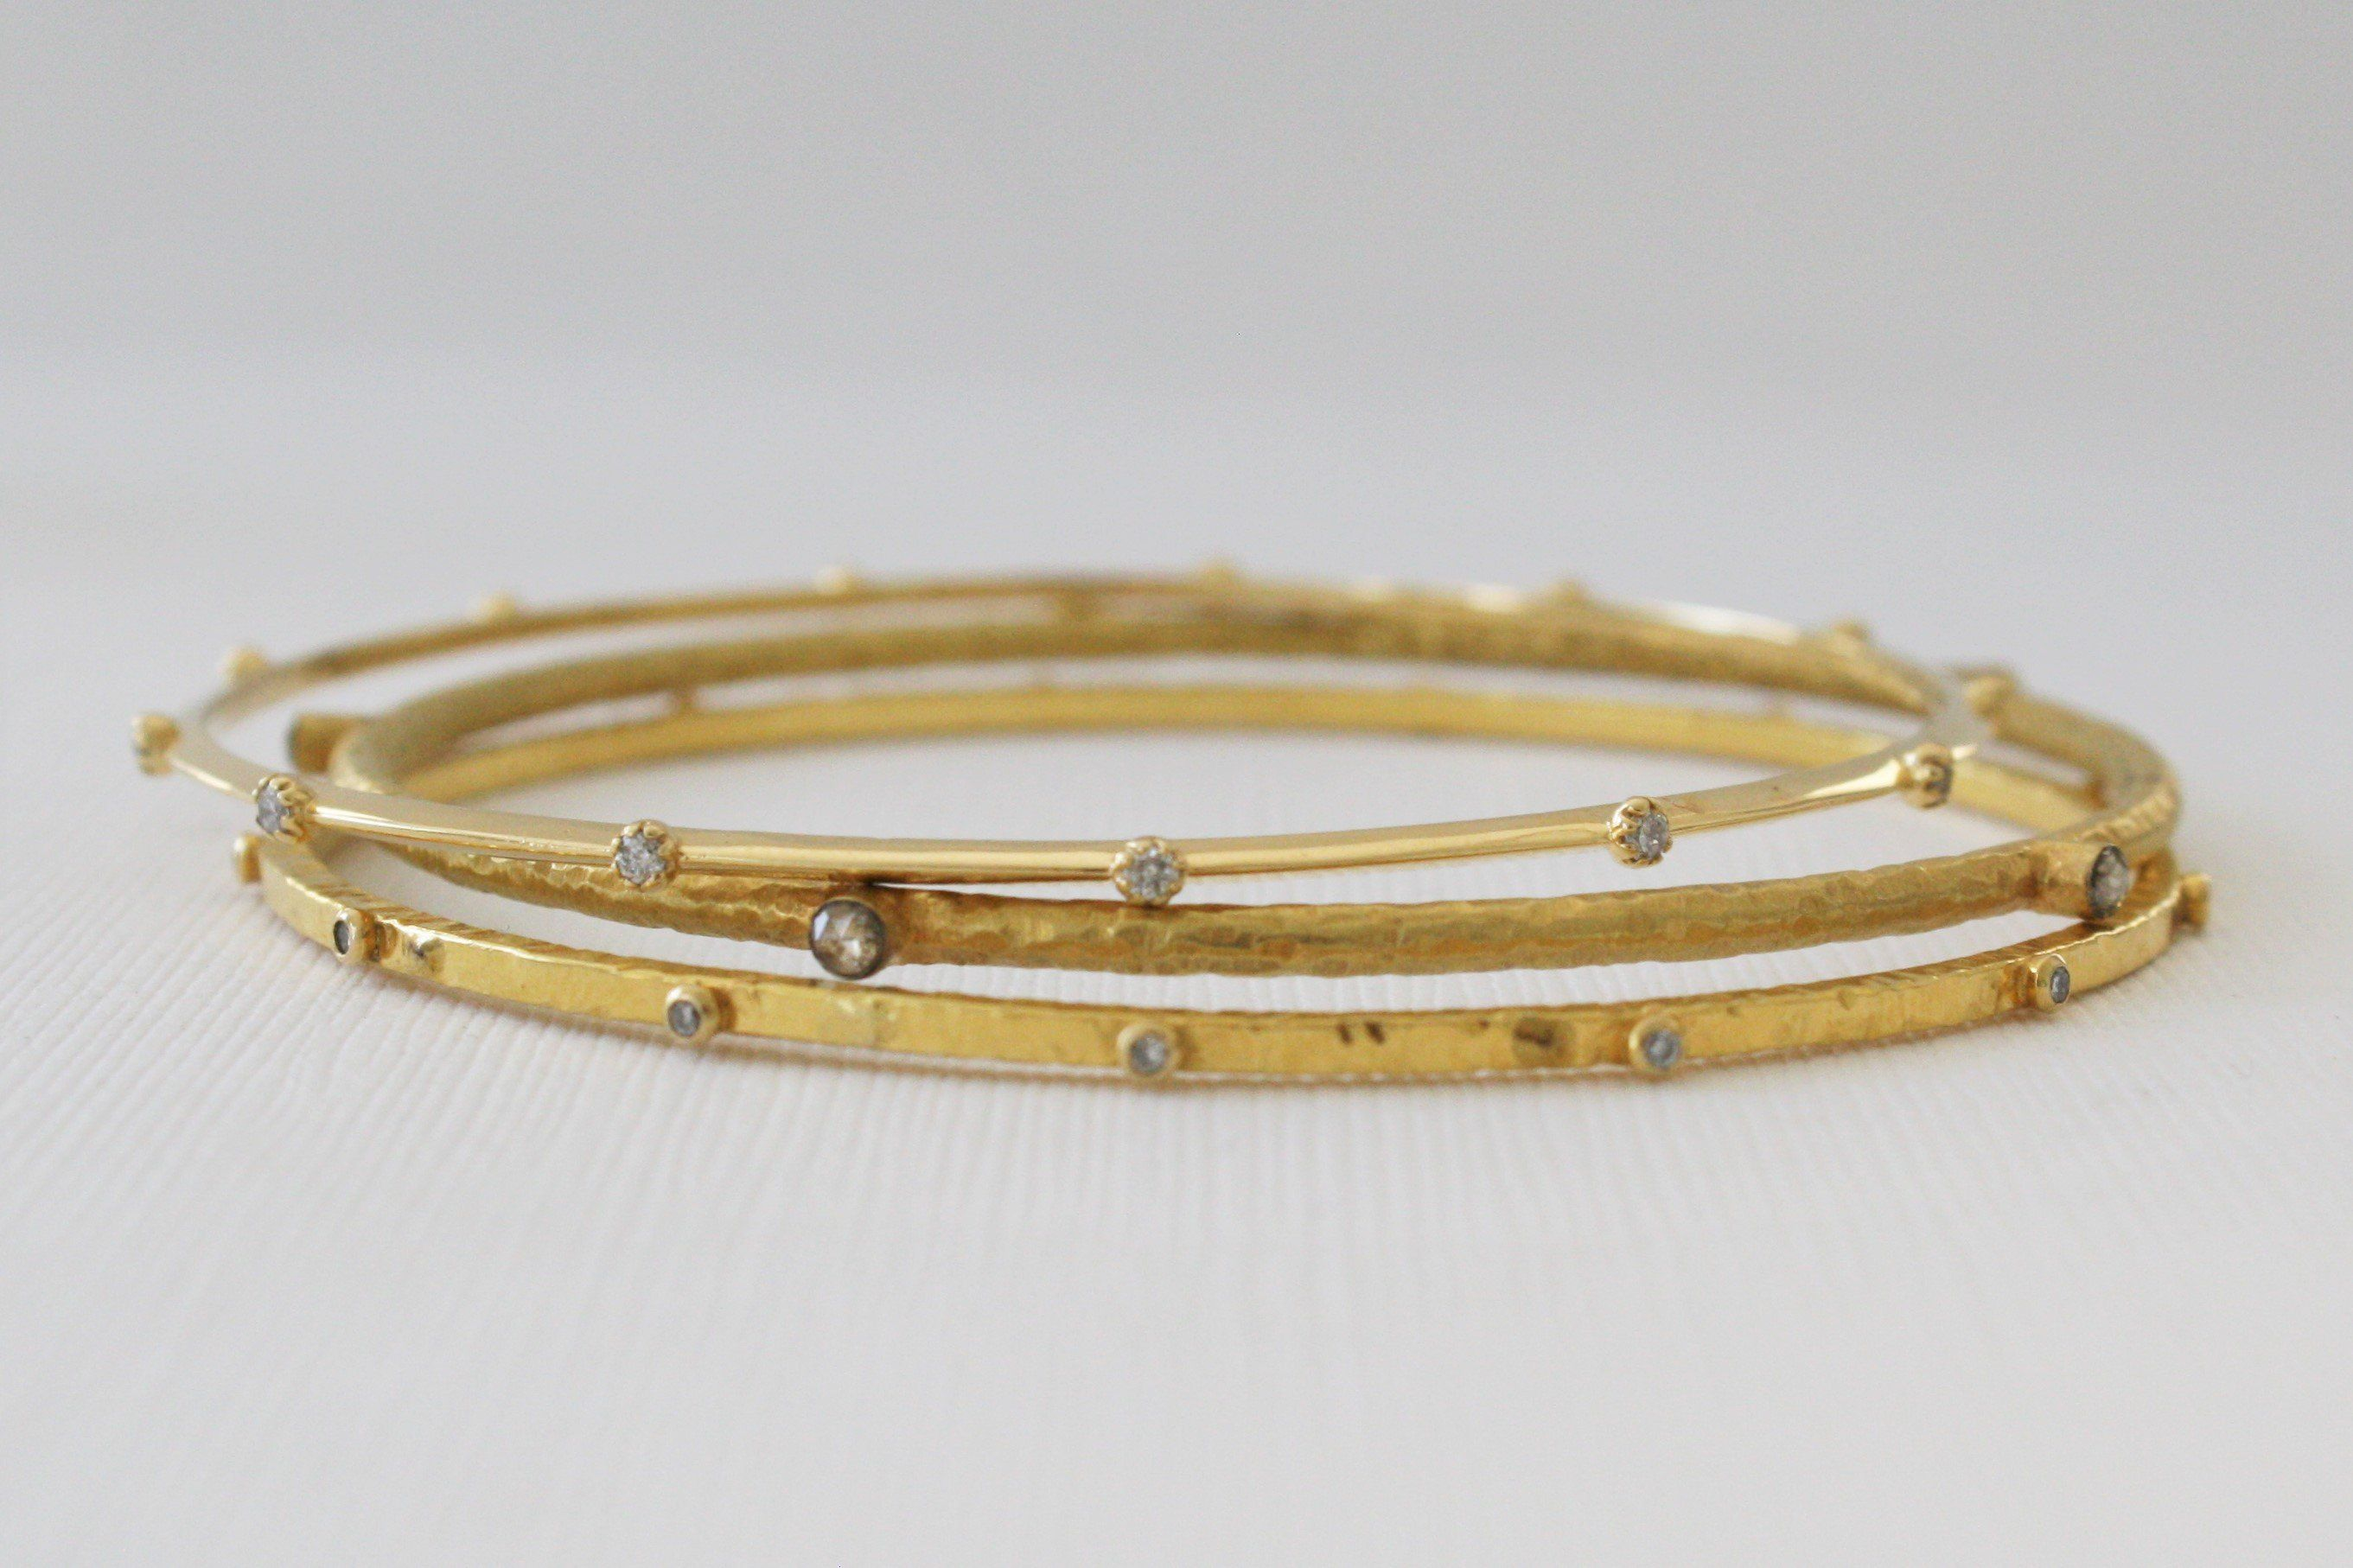 image bangles side gold bangle white polished from solid hinged womens bracelets